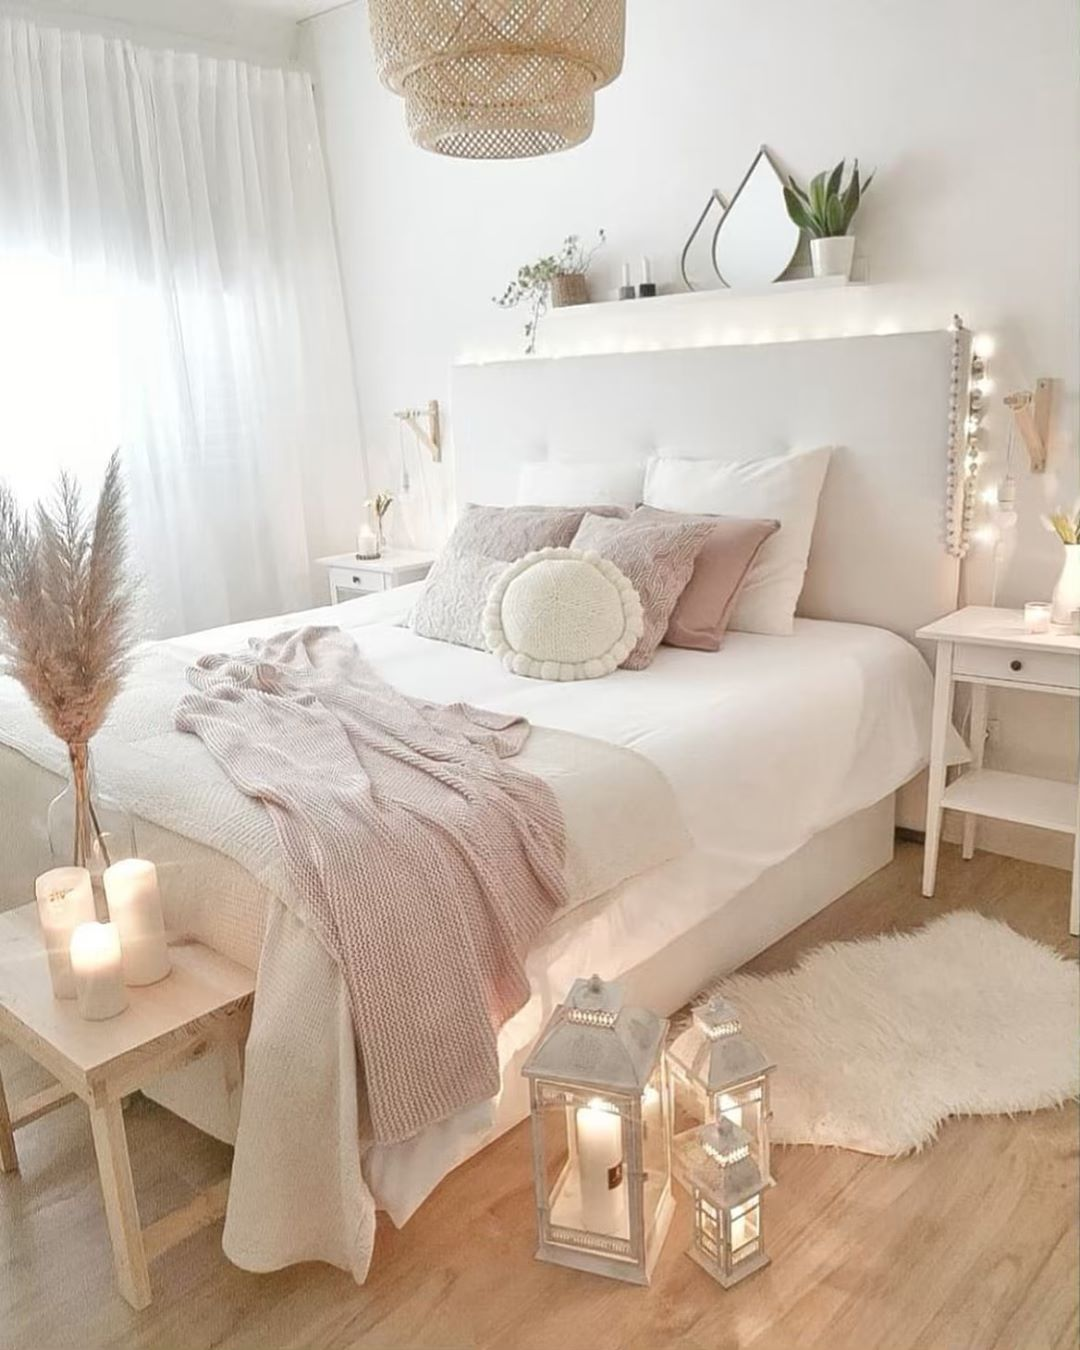 60+ Bohemian Minimalist with Urban Outfiters Bedroom Ideas #bedroomsideas Bedroom decor; cozy bed room decor apartment; modern bed room decor ideas on a budget; bed room decor ideas rustic #bedroomdecor